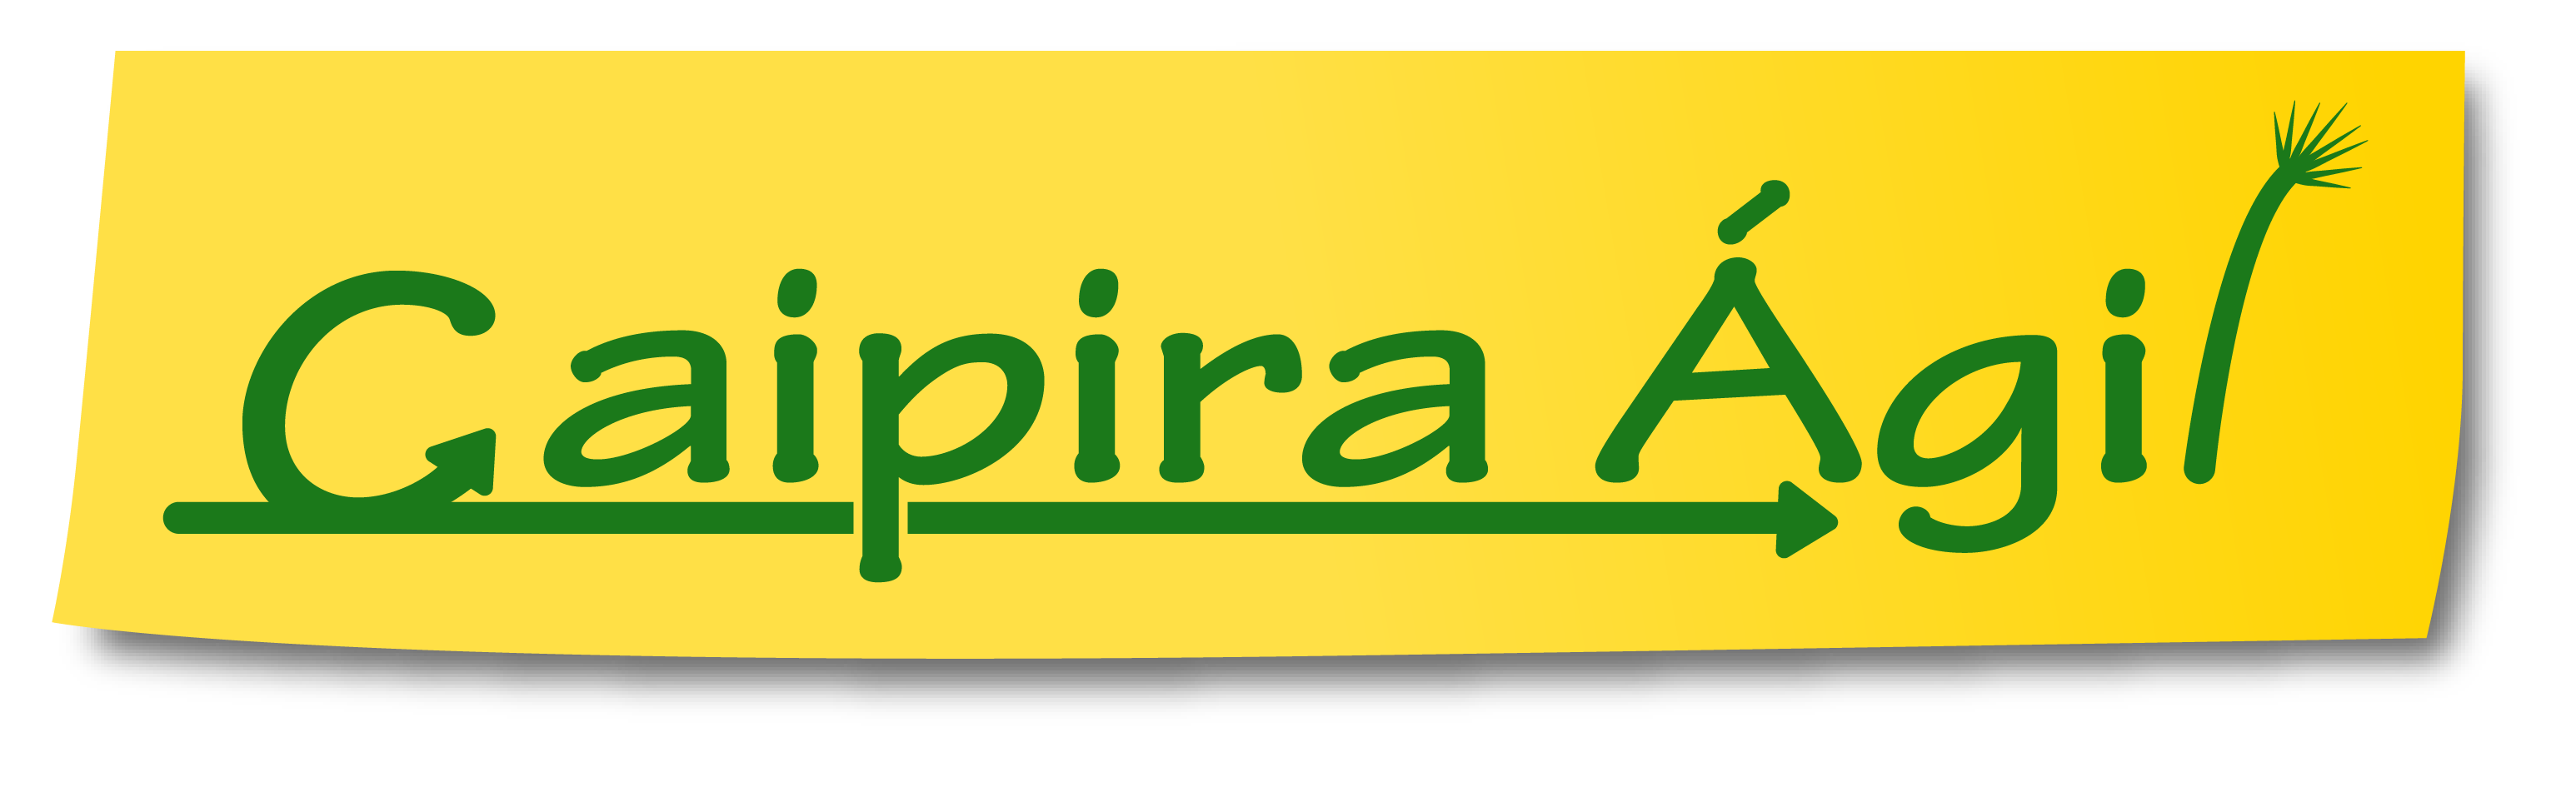 Logo do Caipira Ágil